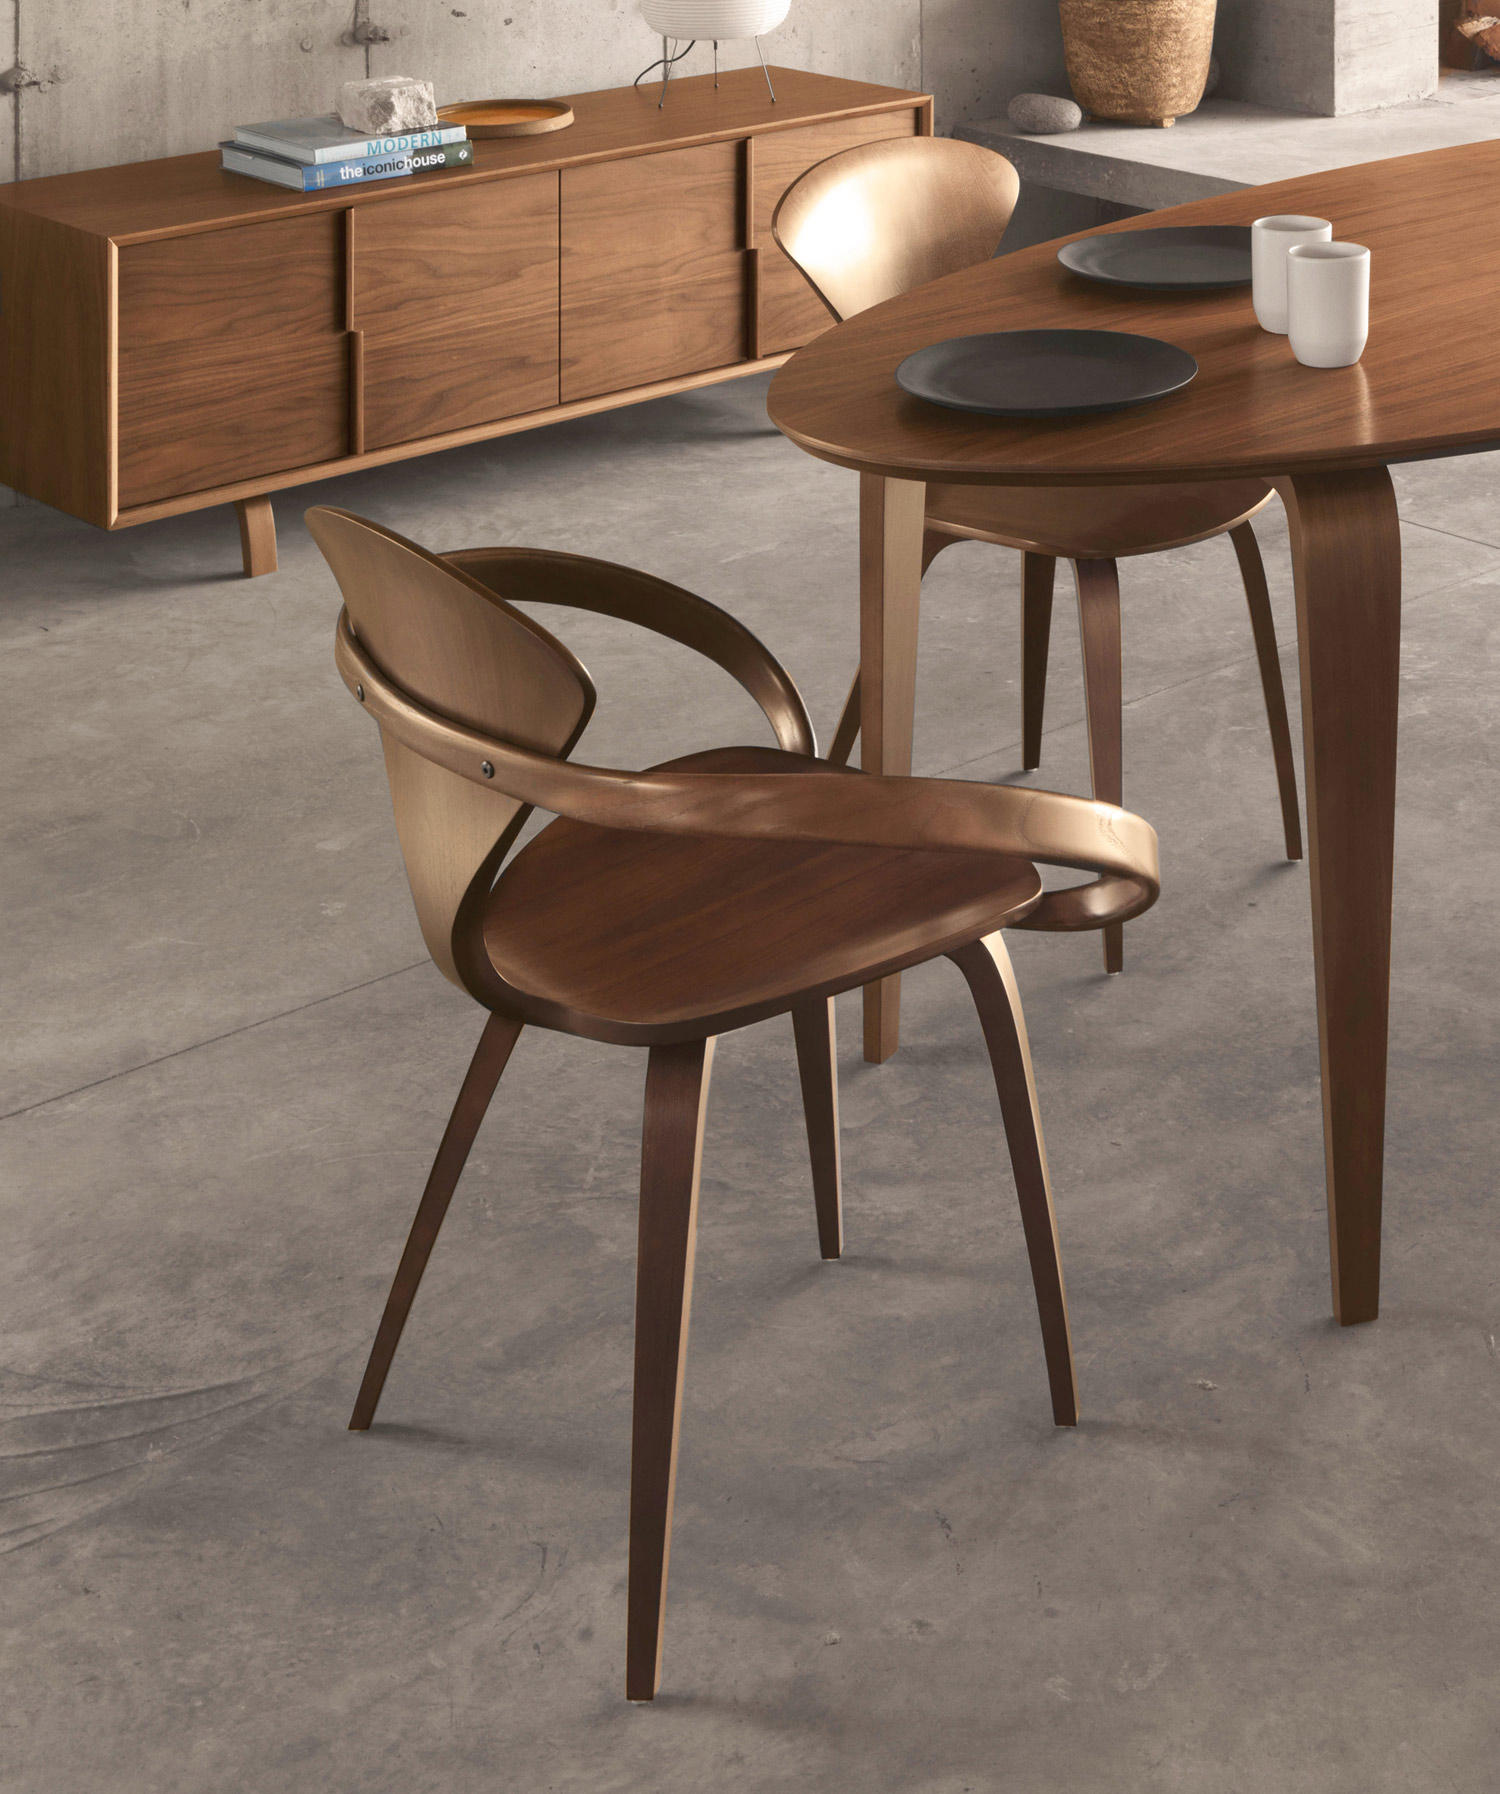 CHERNER ARMCHAIR - Restaurant chairs from Cherner | Architonic